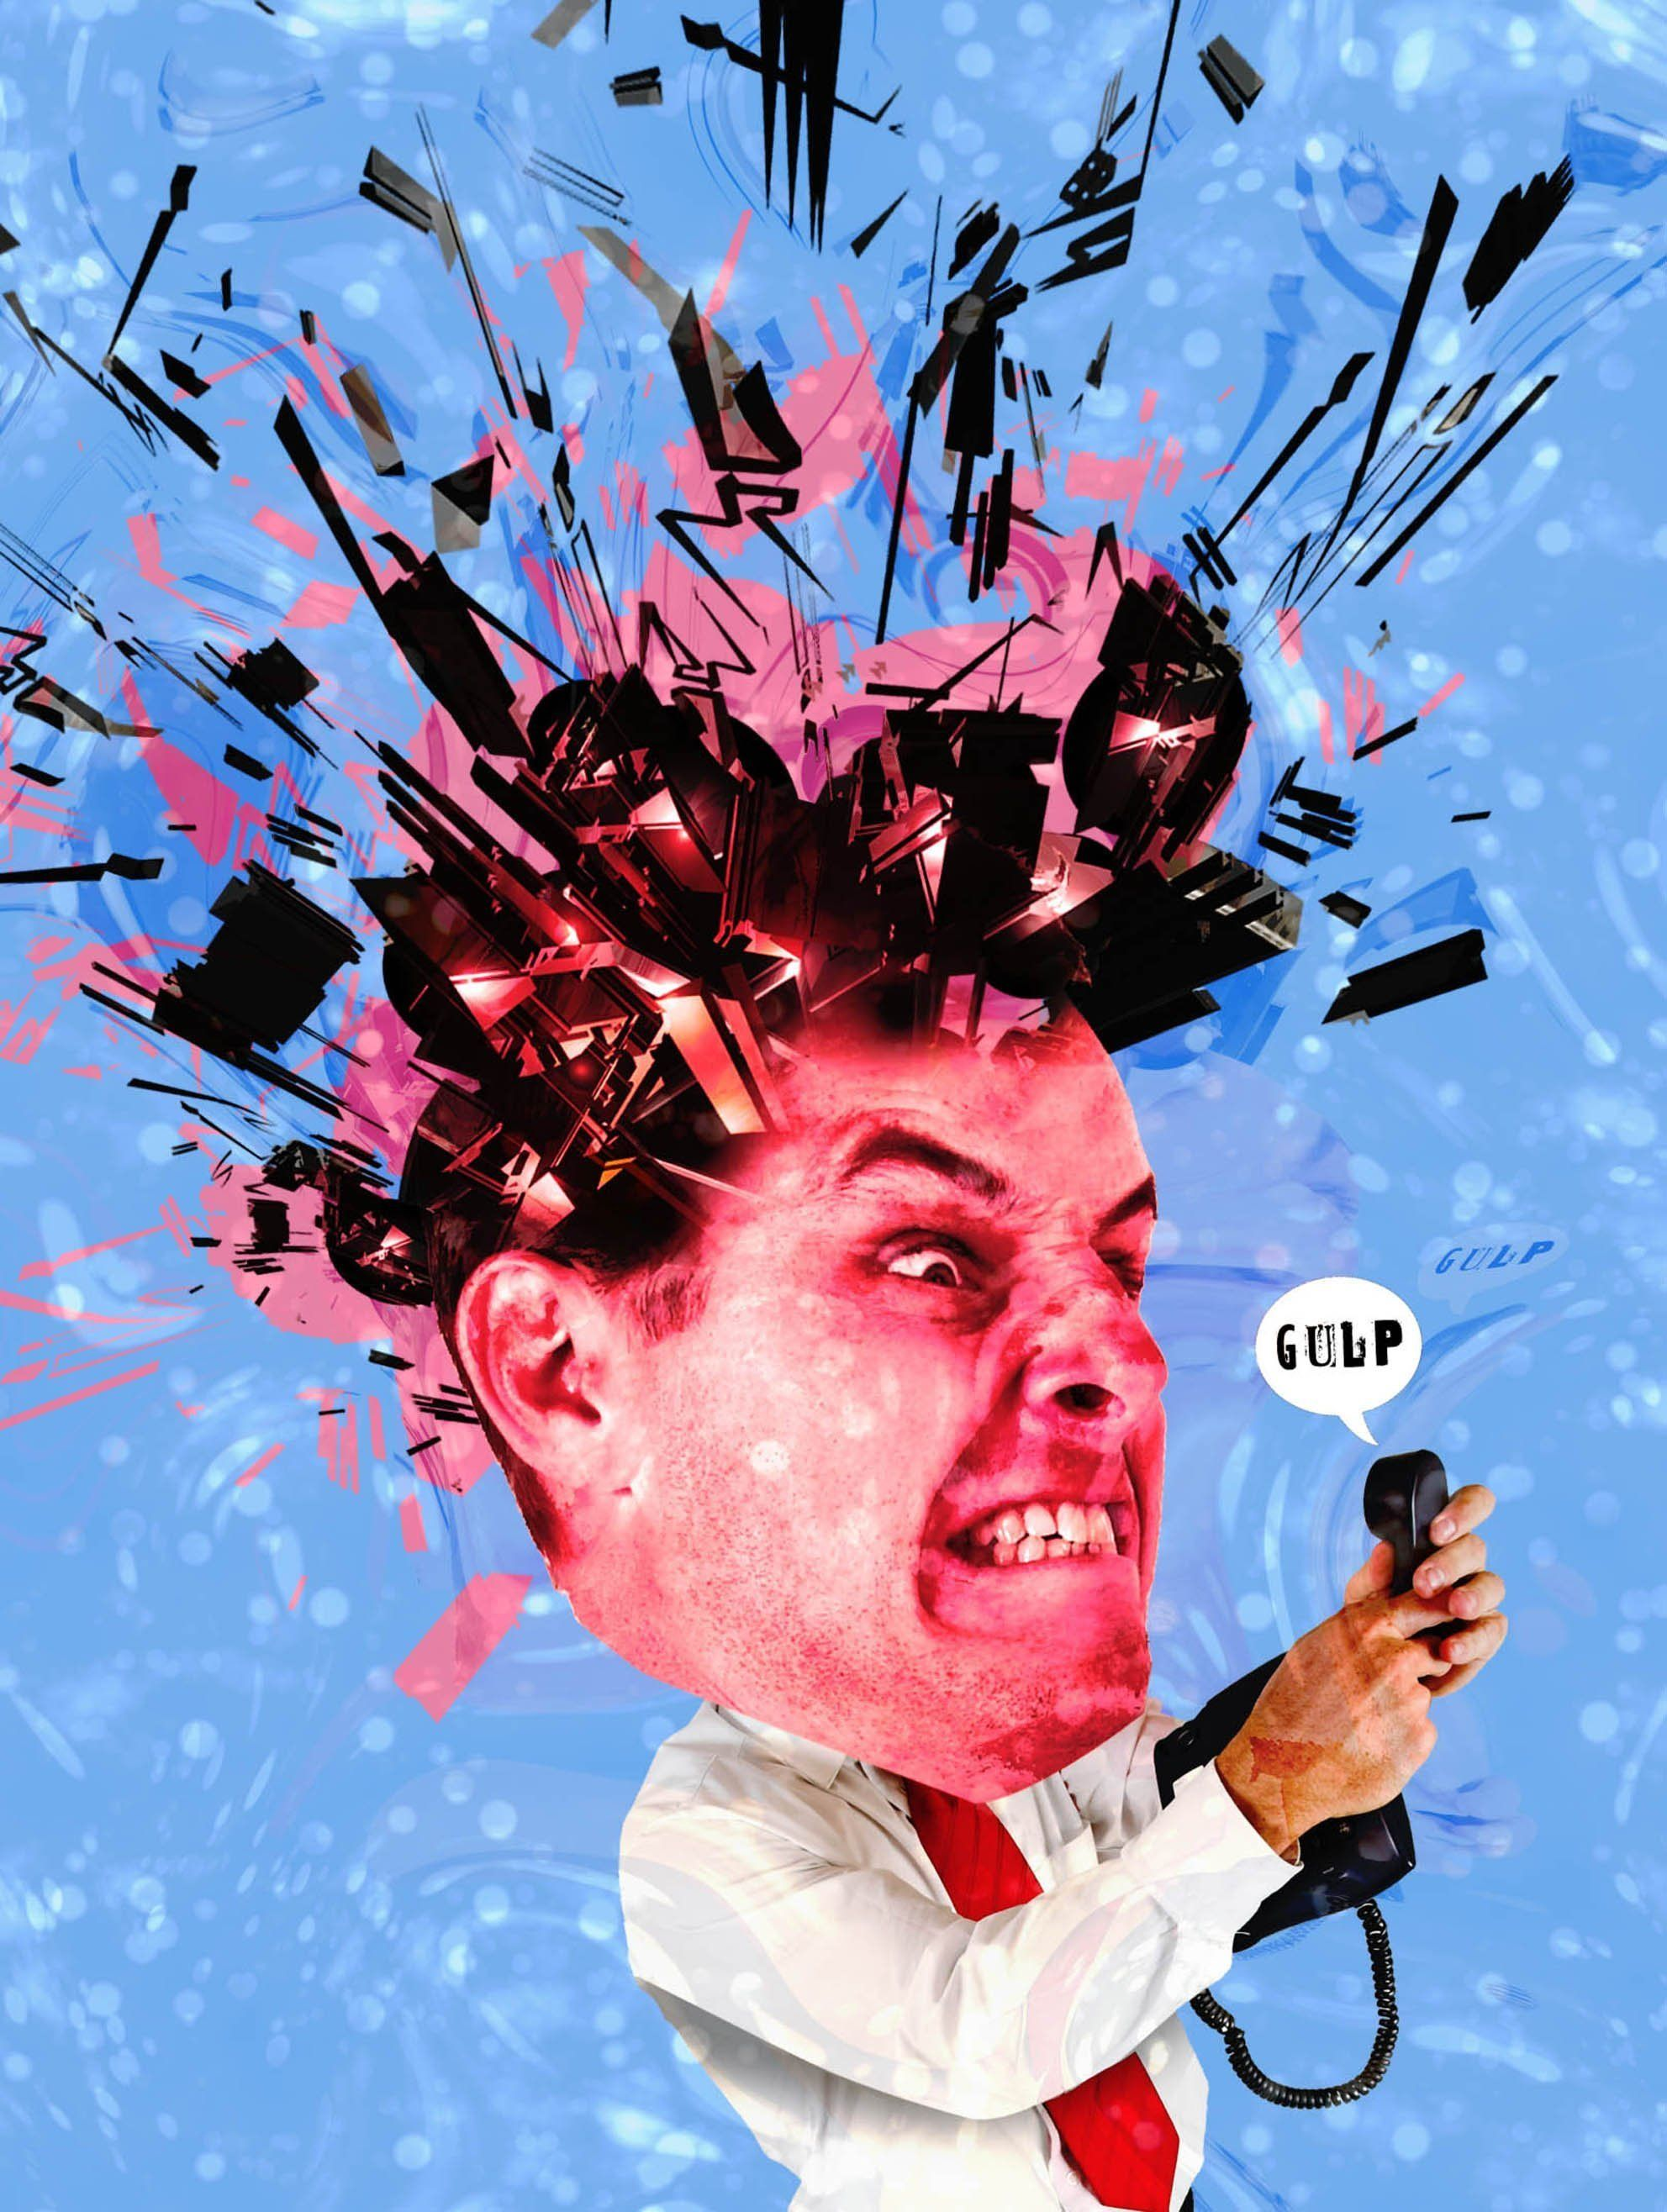 USA - 2013 300 dpi Rick Nease illustration of man being driven mad by robocalls. (The Detroit Free Press/MCT via Getty Images)